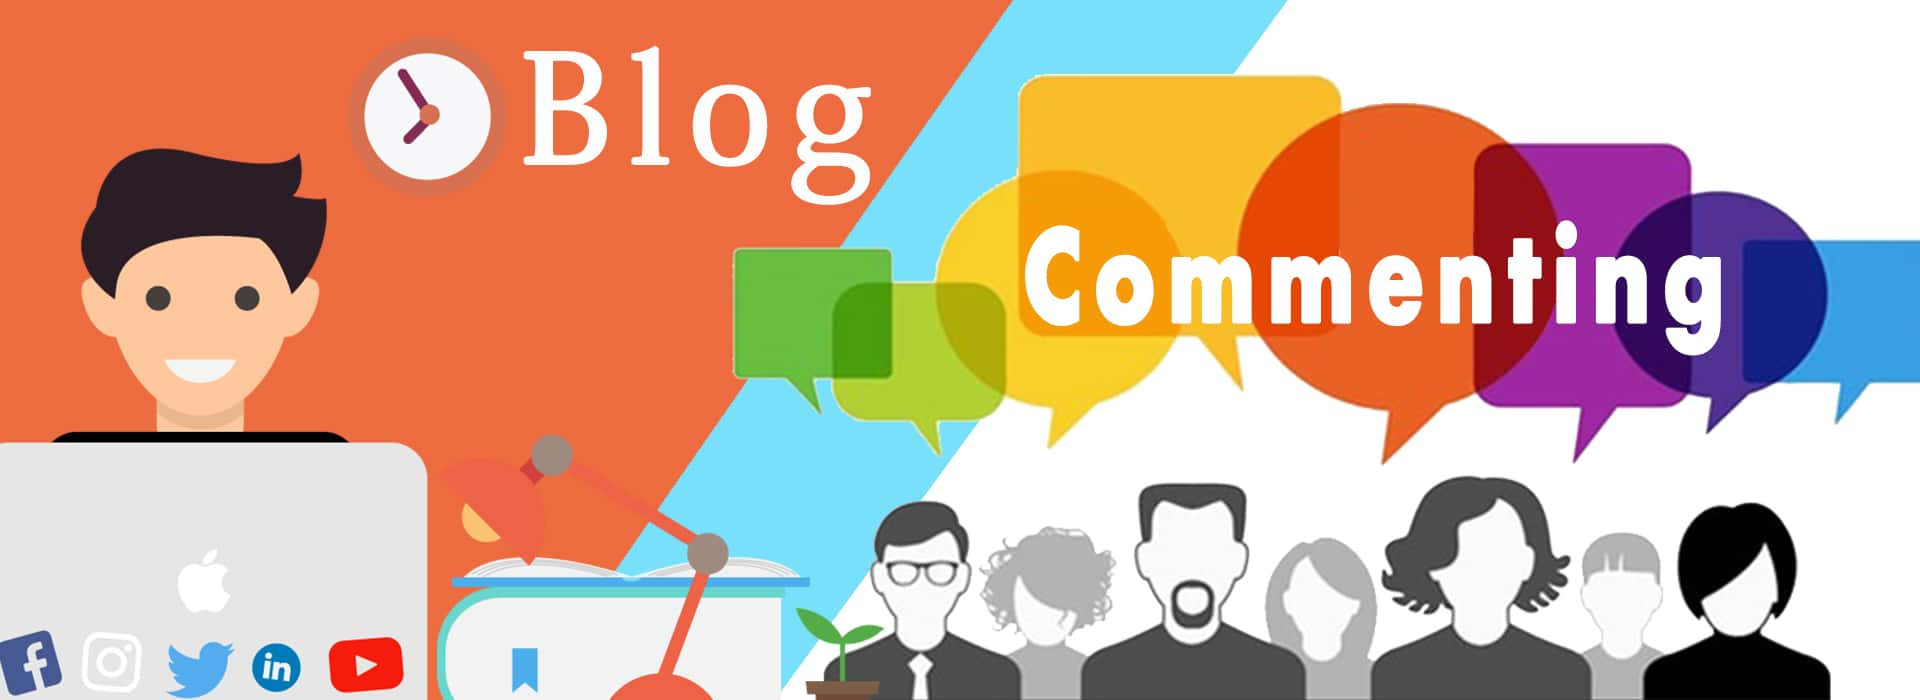 Blog_Commenting-0wudZwfs